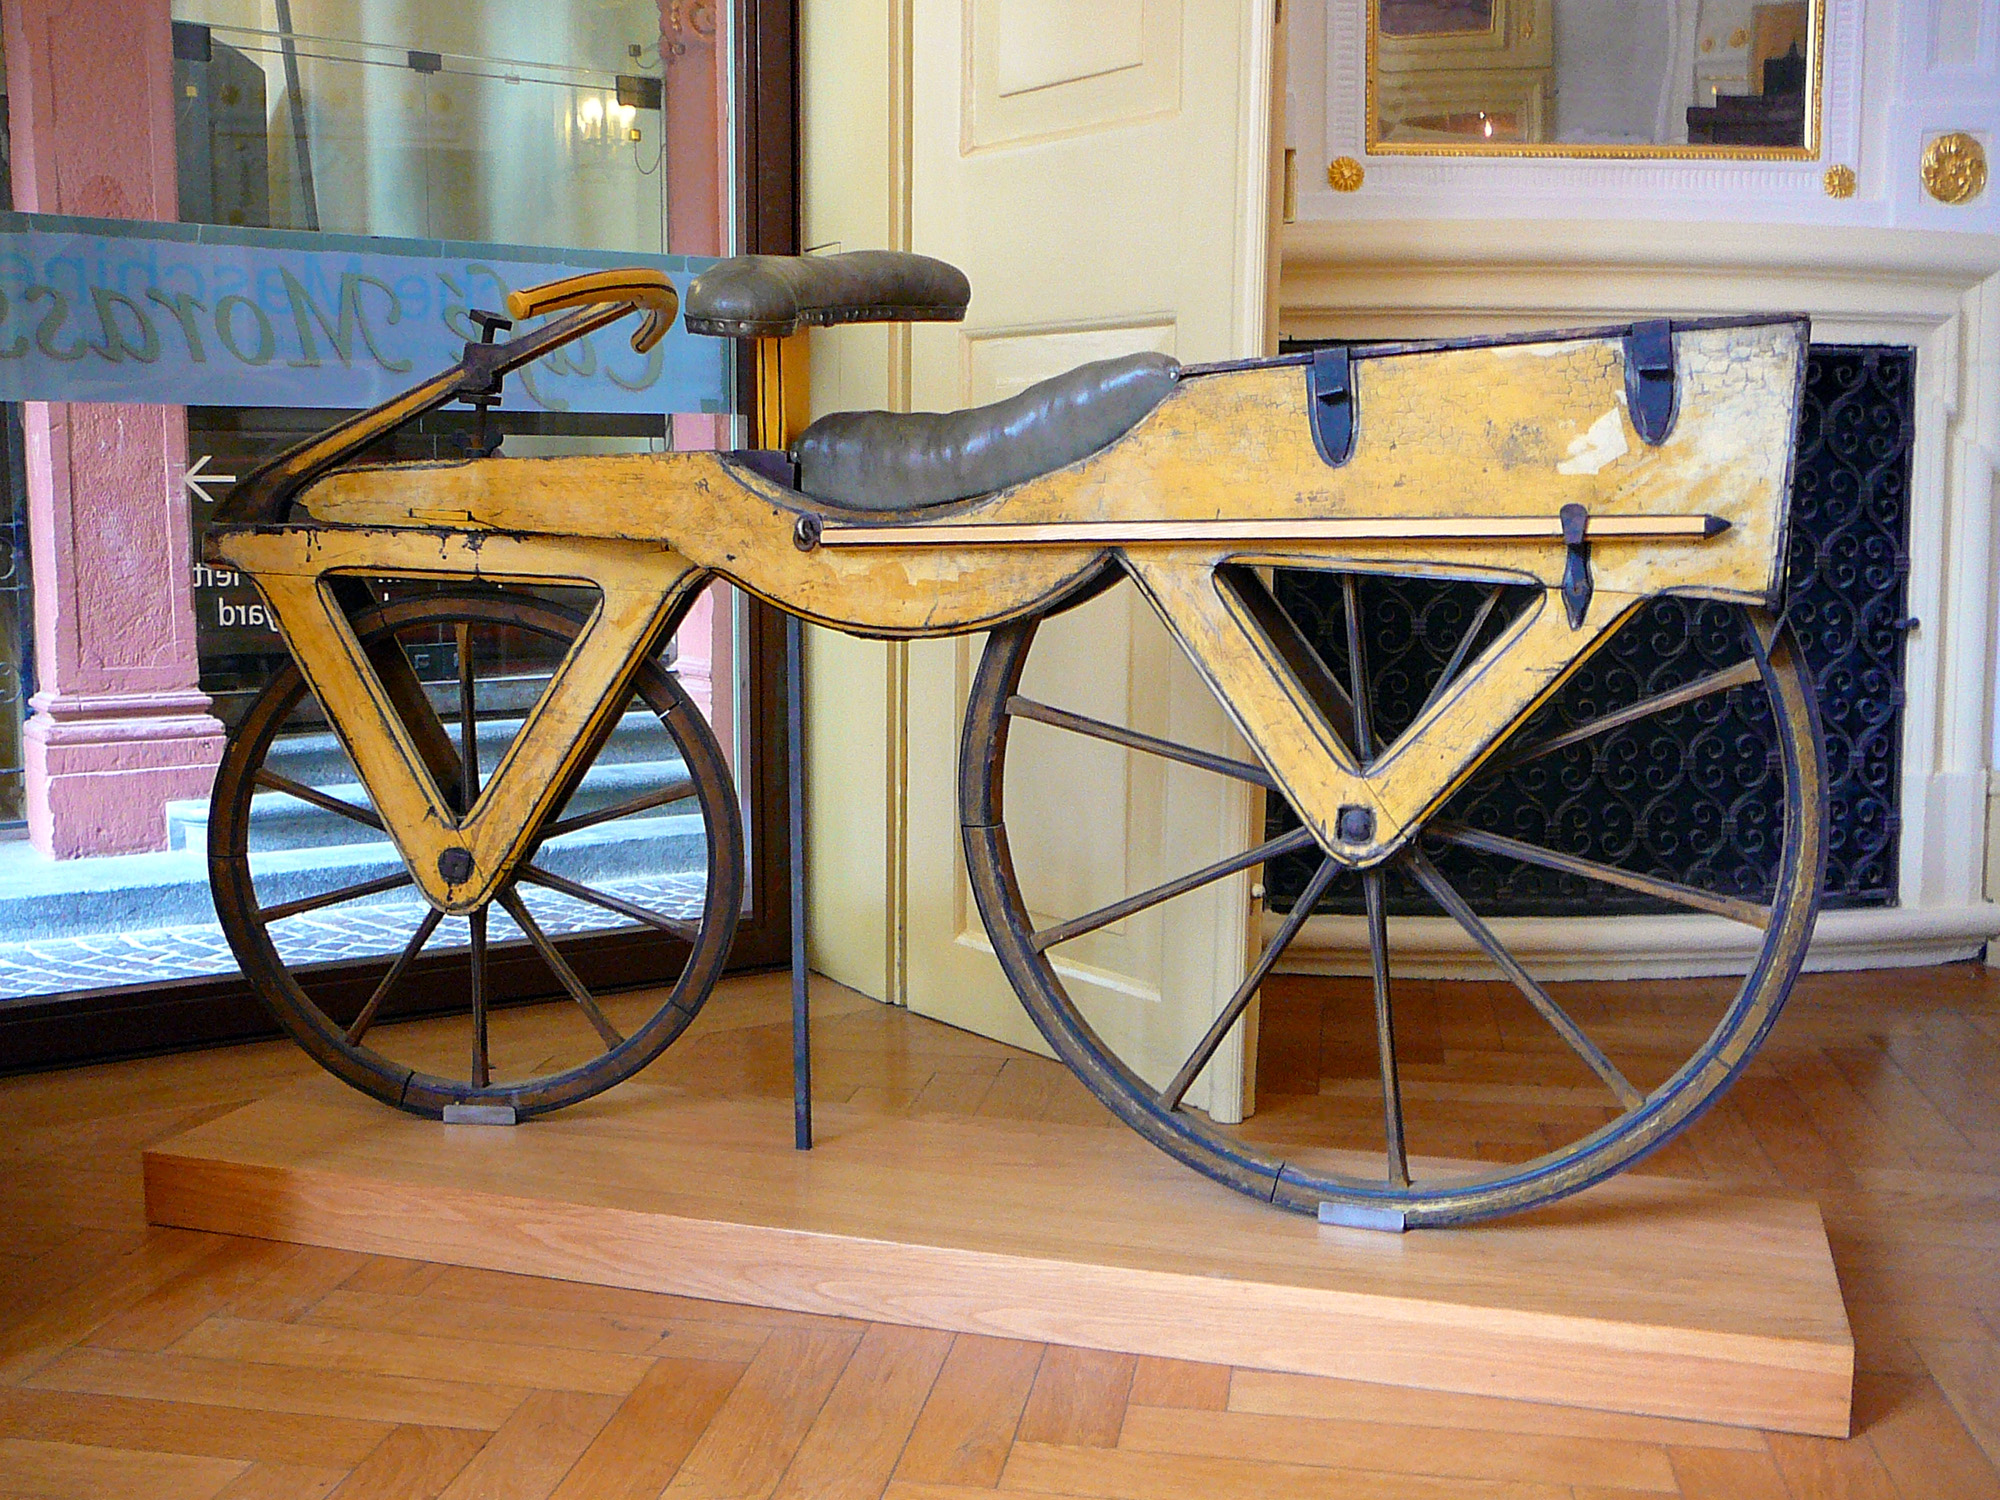 Bike History References to the draisine or